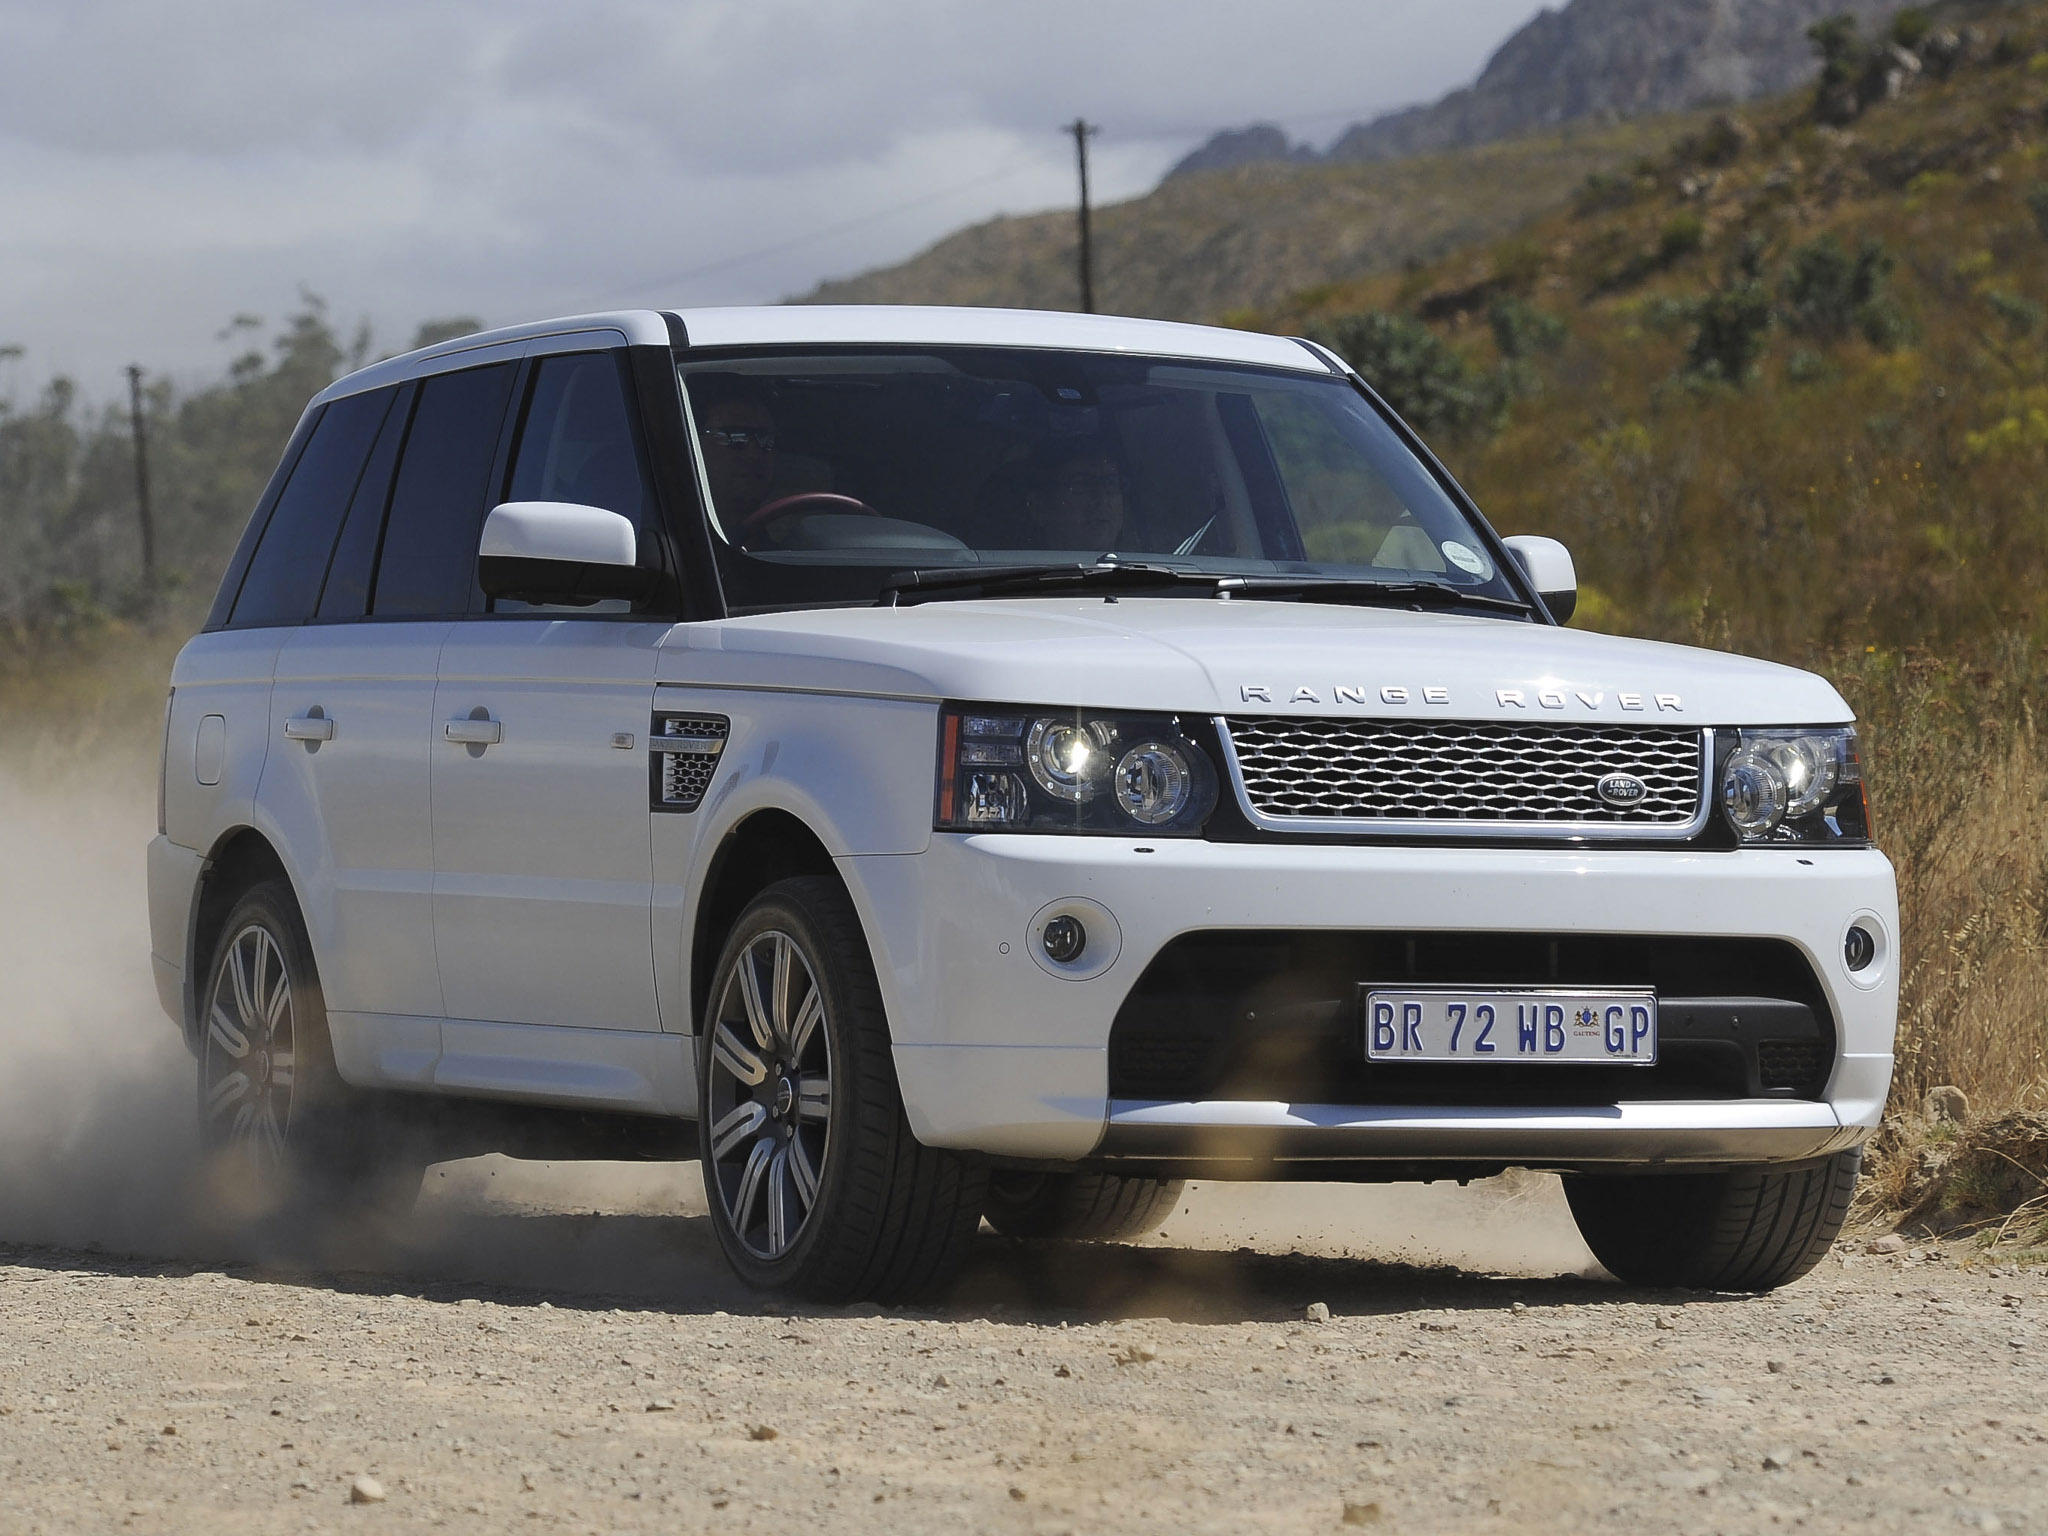 2012 land rover range rover sport information and photos momentcar. Black Bedroom Furniture Sets. Home Design Ideas